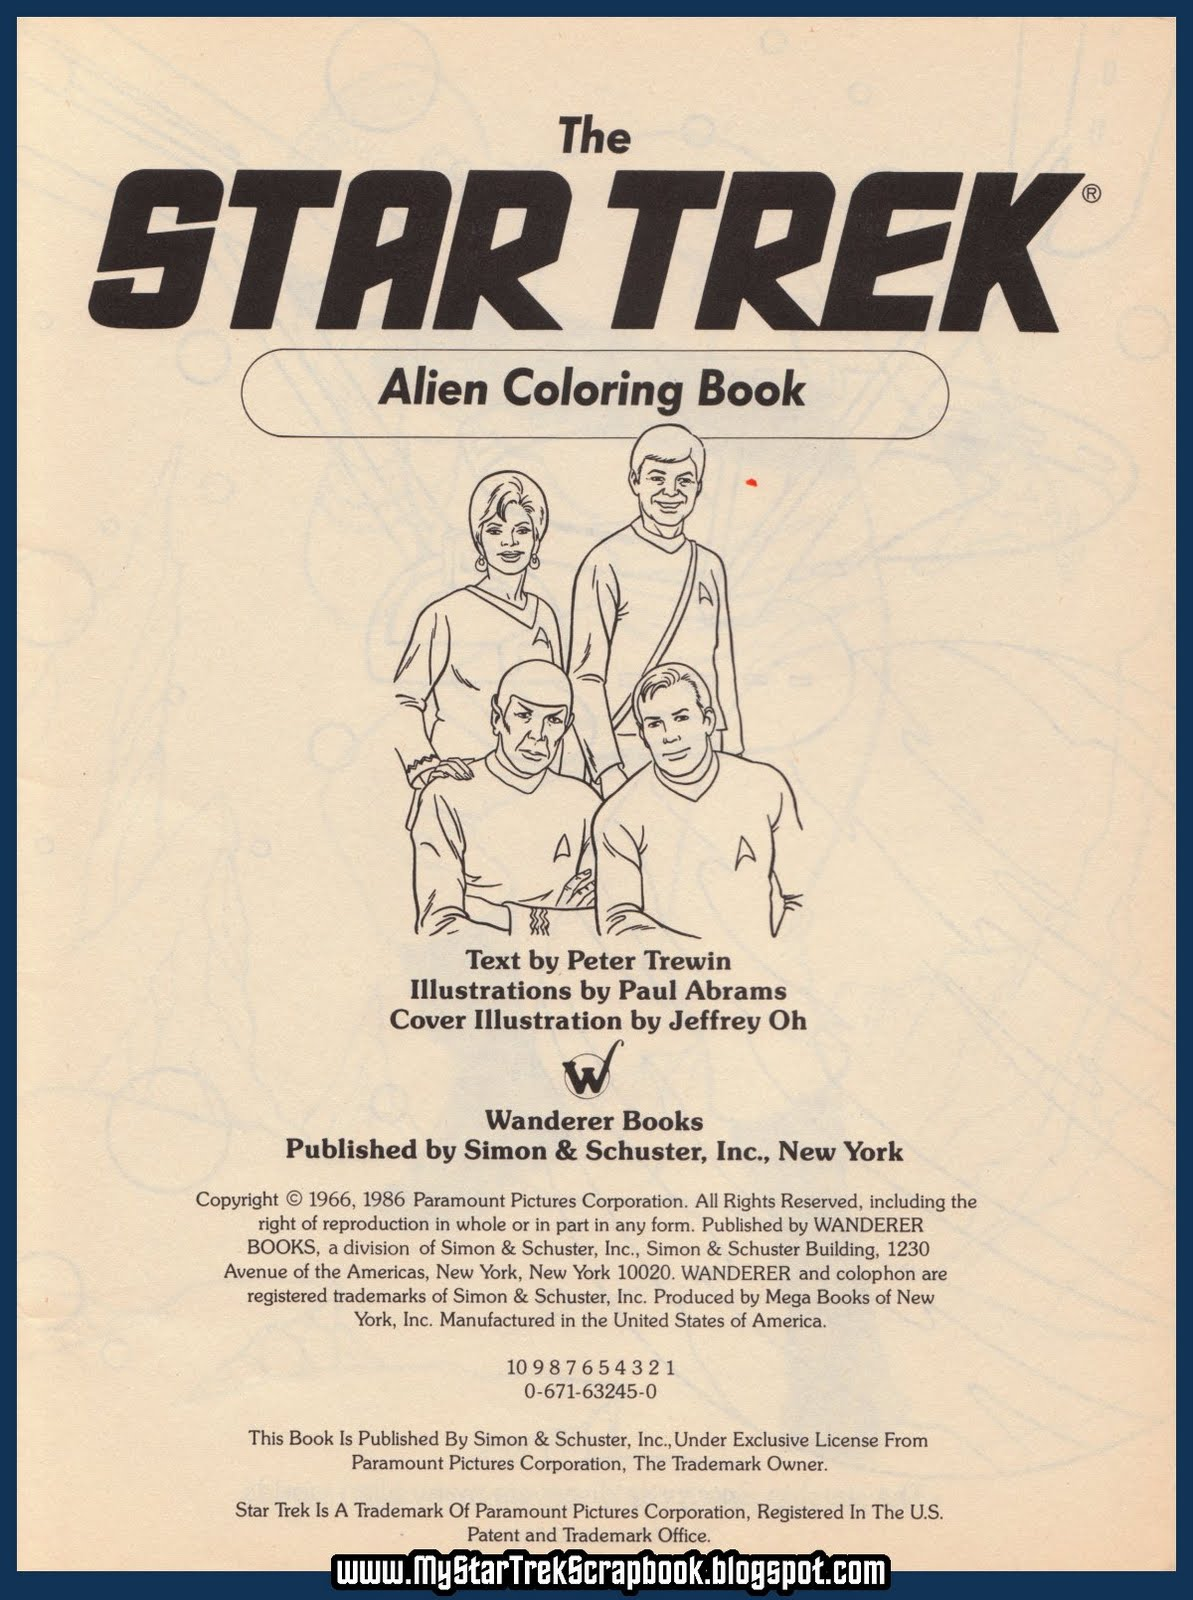 star trek coloring books you are not going to let your kids color in them so print out these pages and hand them out to the kids with your blessing - Star Trek Coloring Book